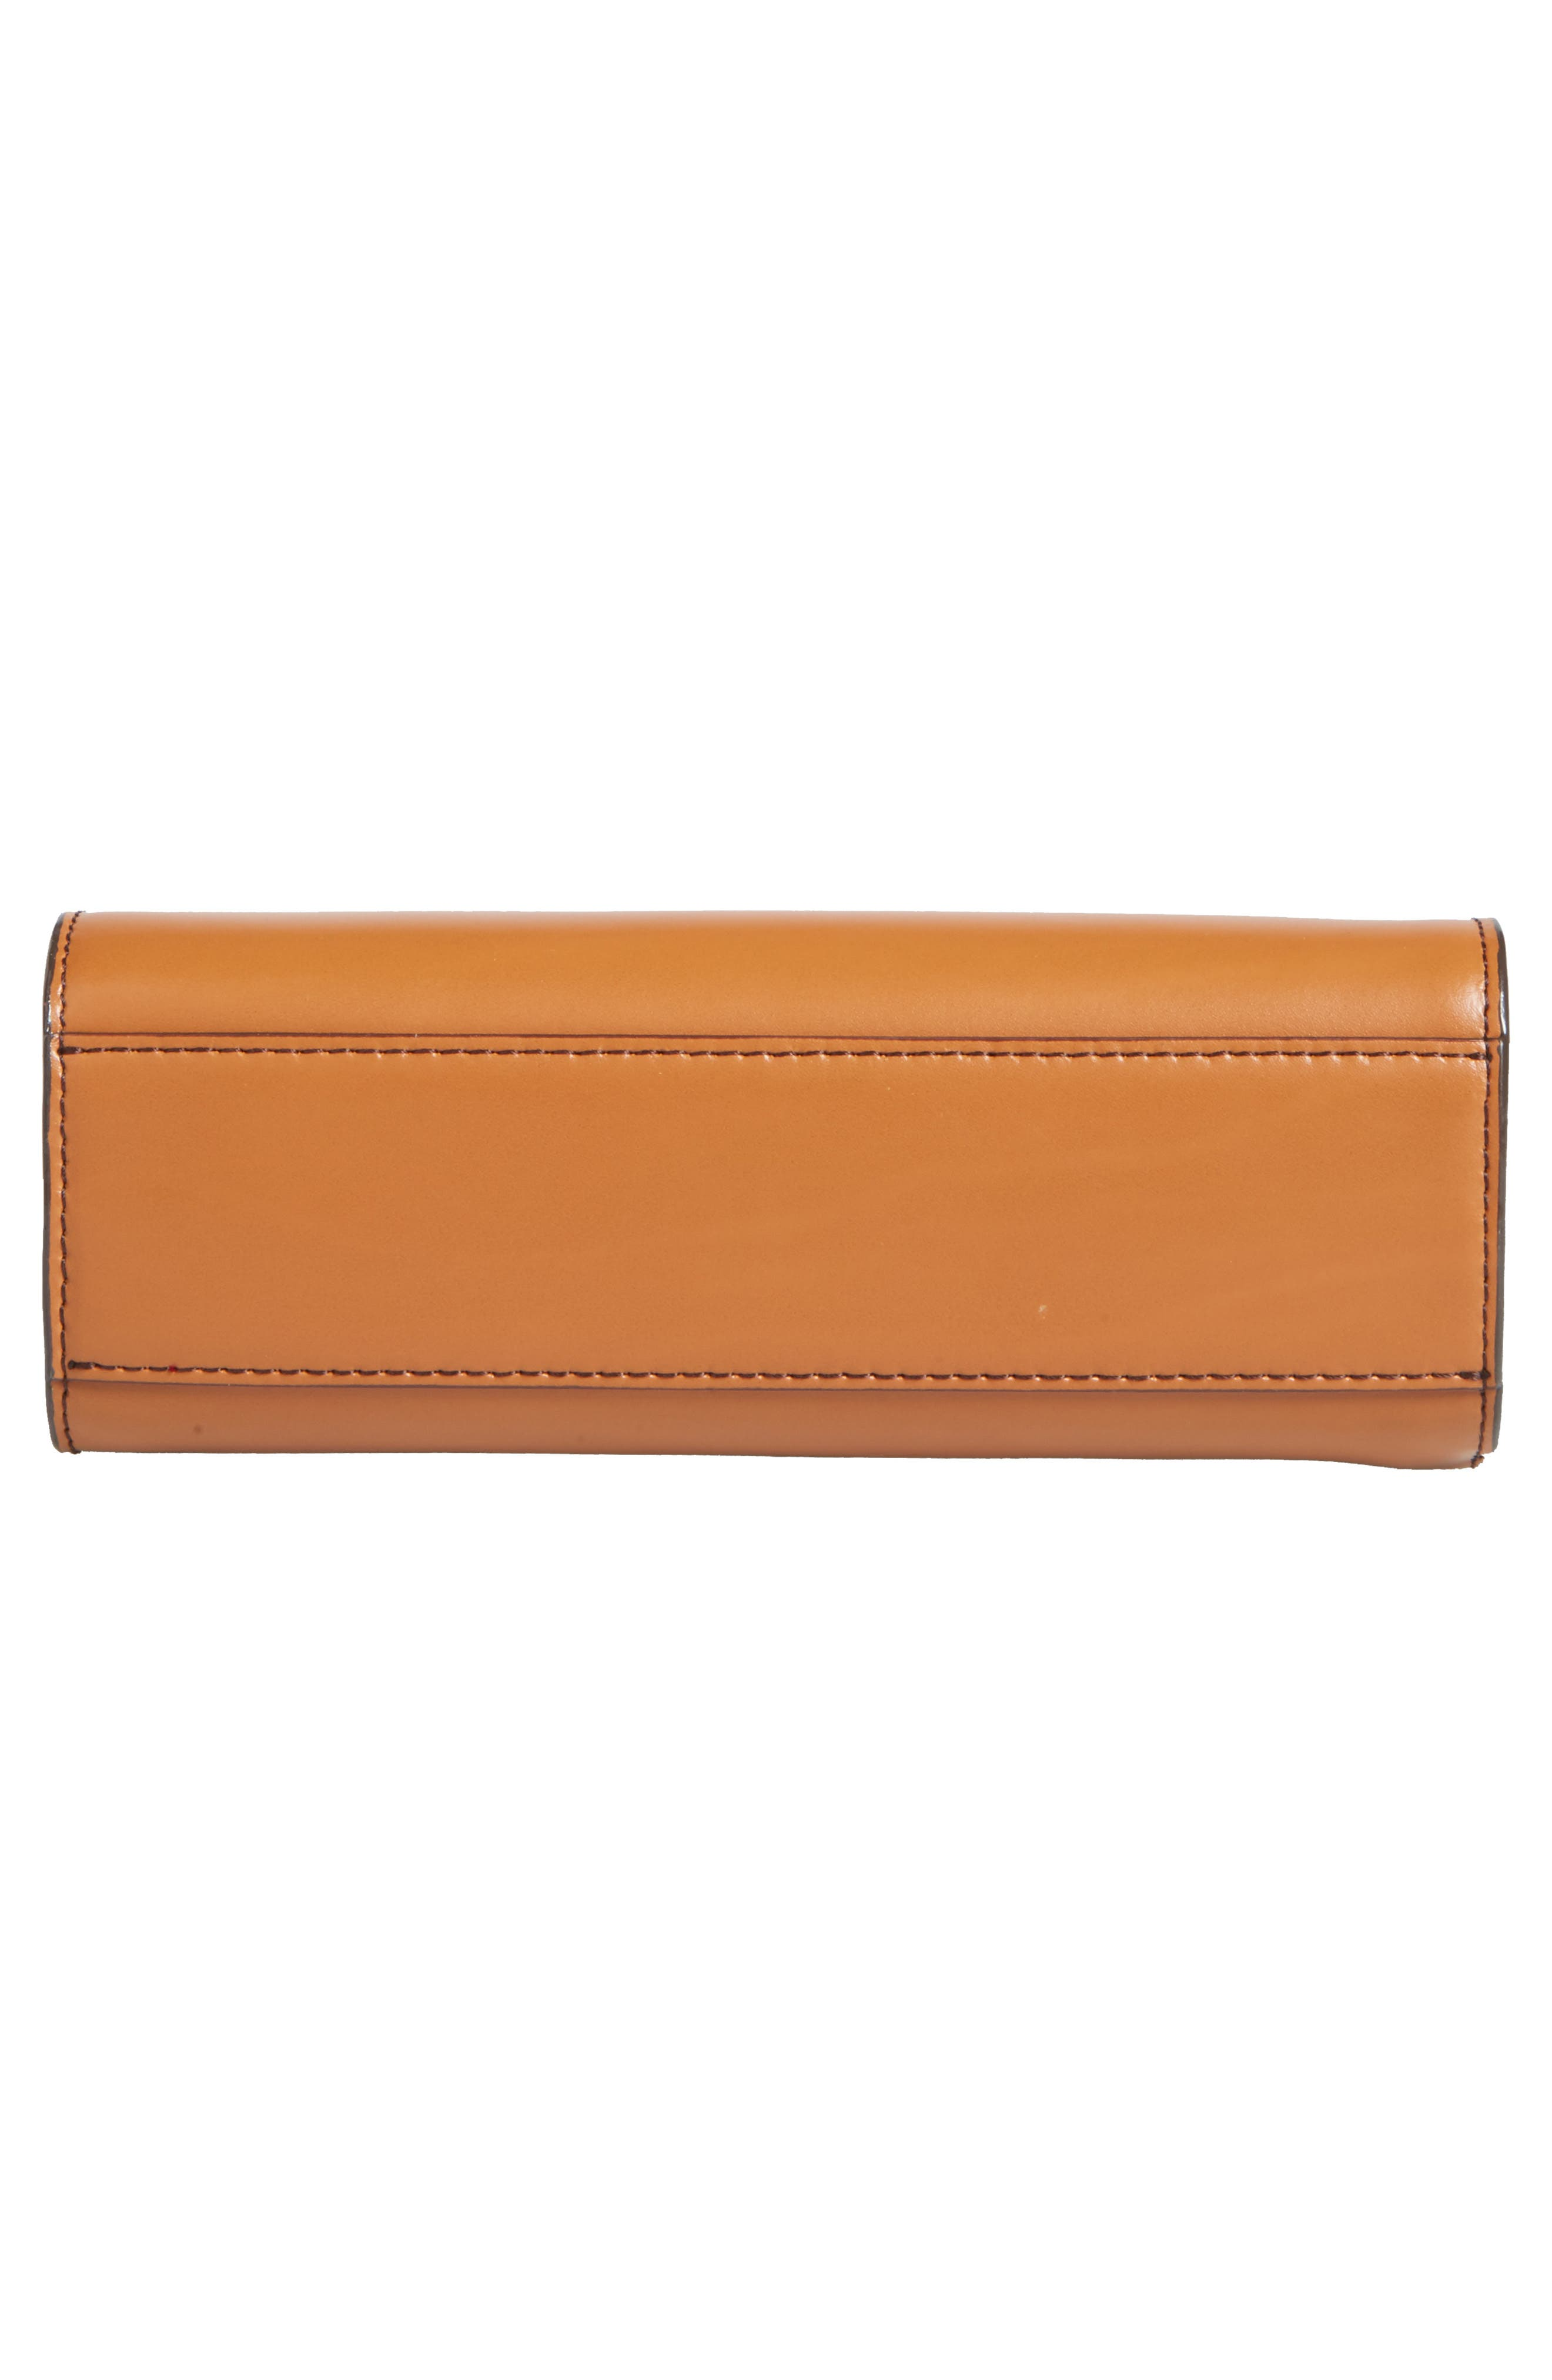 Audrey Under Lock & Key Vicky Convertible Leather Crossbody Bag,                             Alternate thumbnail 6, color,                             TOFFEE